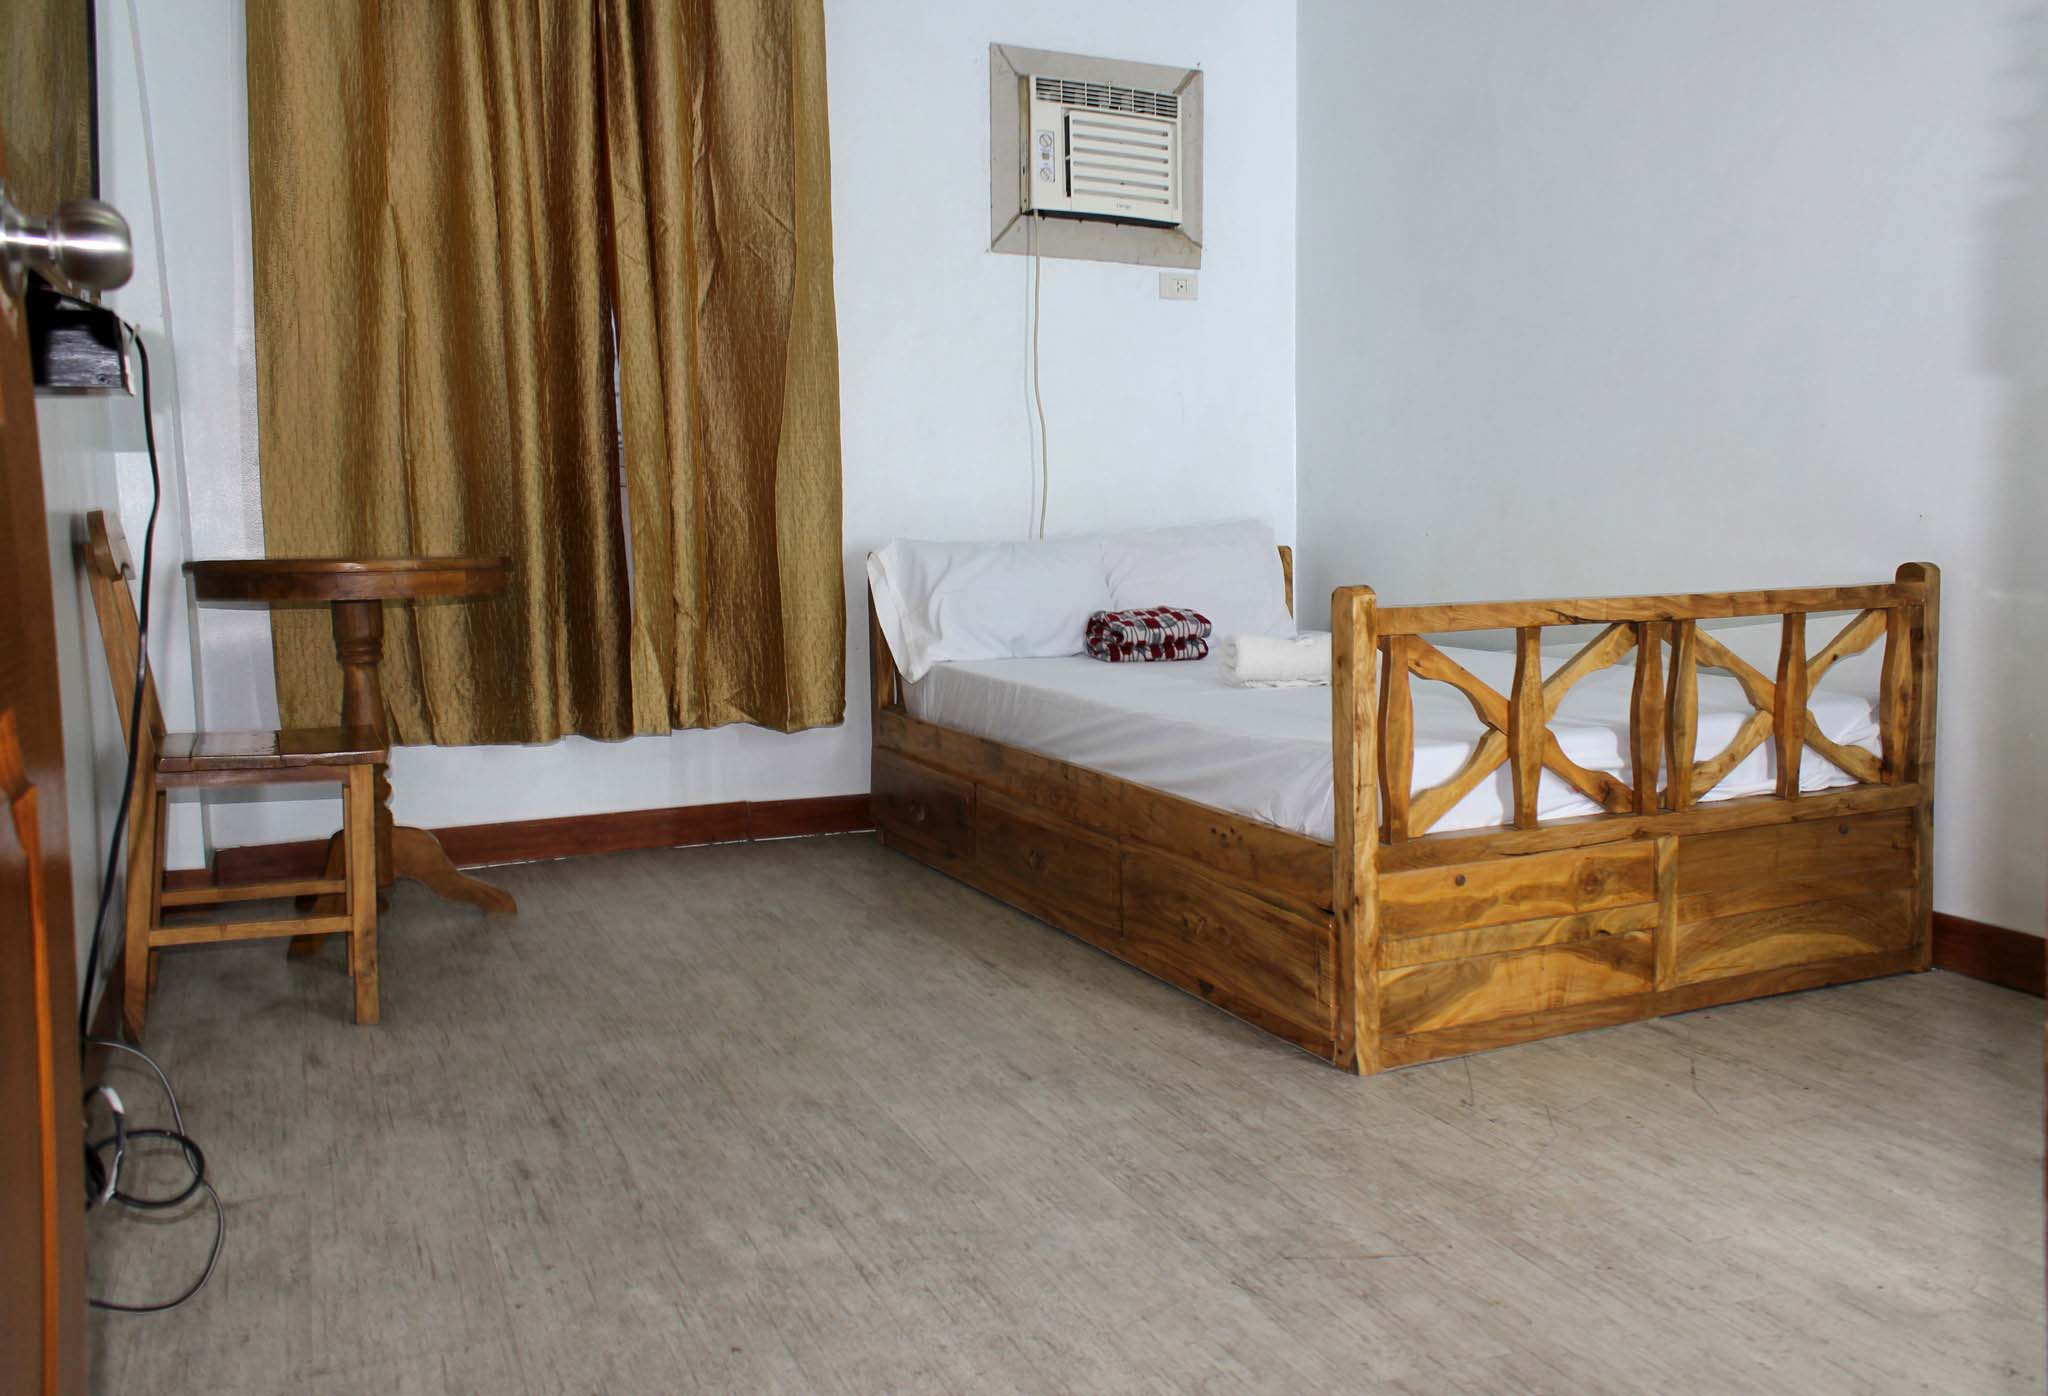 www.rooms498.com Budget, Cheap, Affordable Daily Monthly Room Rentals - Travel Inn, Student Dormitory, Hotel, Motel, Hostel, Houses Apartment Rooms for Rent with Aircon